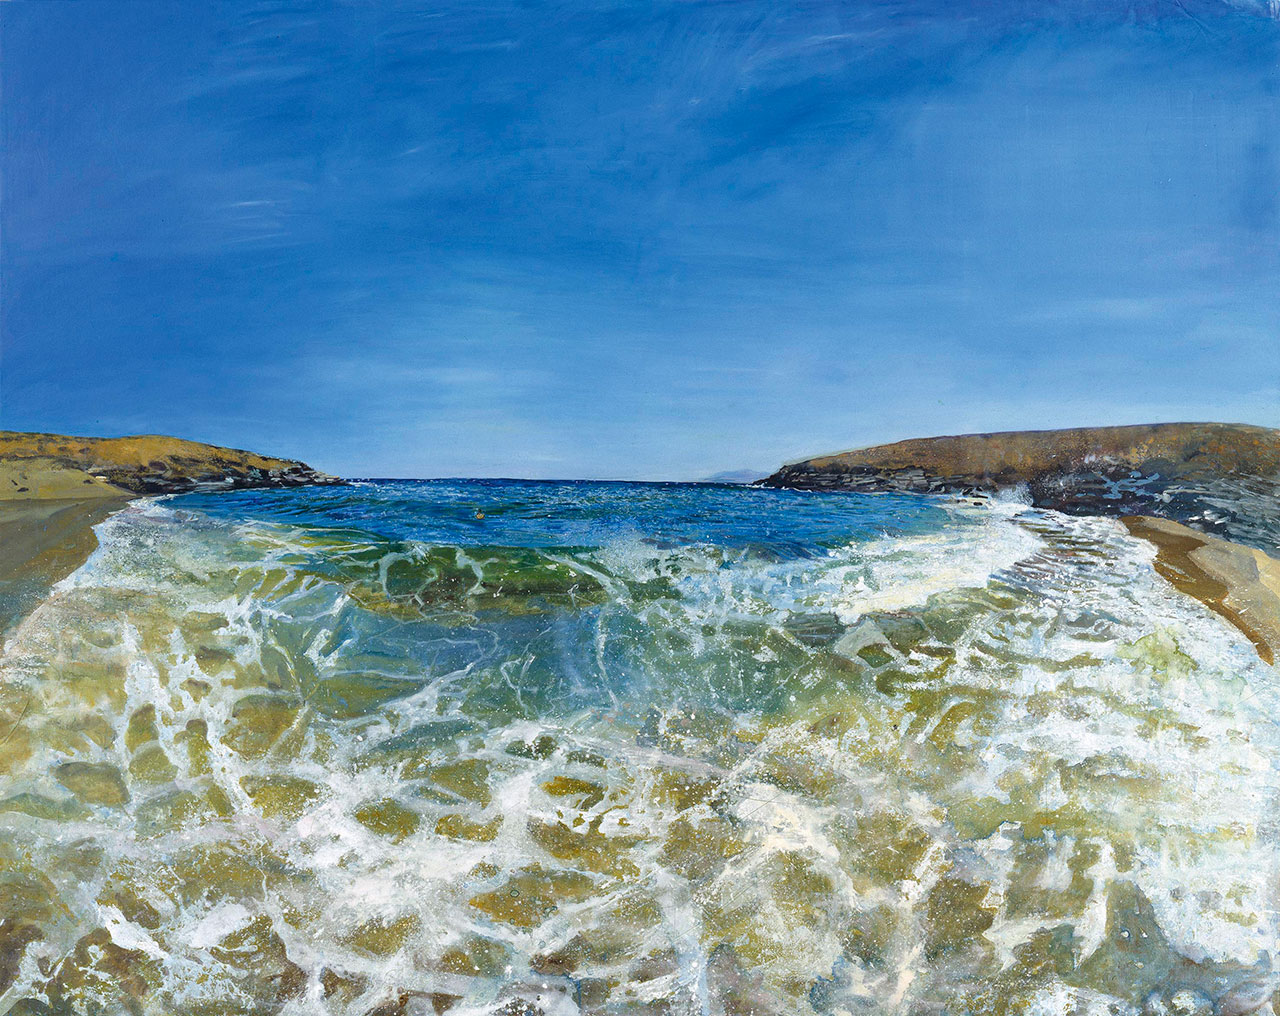 Maria Filopoulou, Sea, 1998. Oil on canvas, 200 x 250cm.